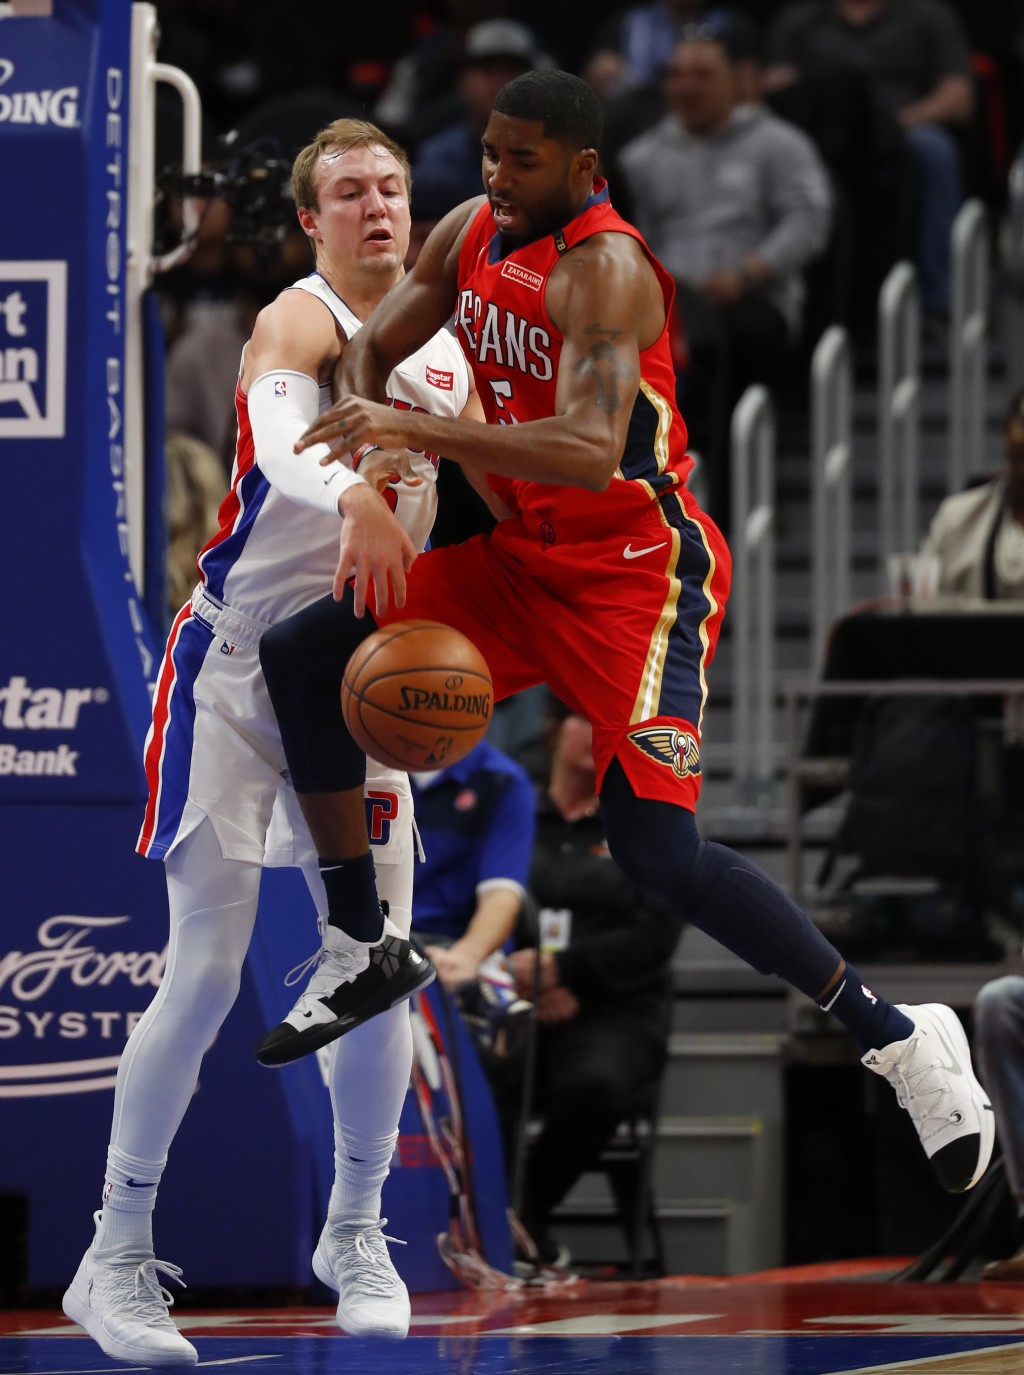 Detroit Pistons guard Luke Kennard, left, knocks the ball from New Orleans Pelicans guard E'Twaun Moore, right, in the first half of an NBA basketball